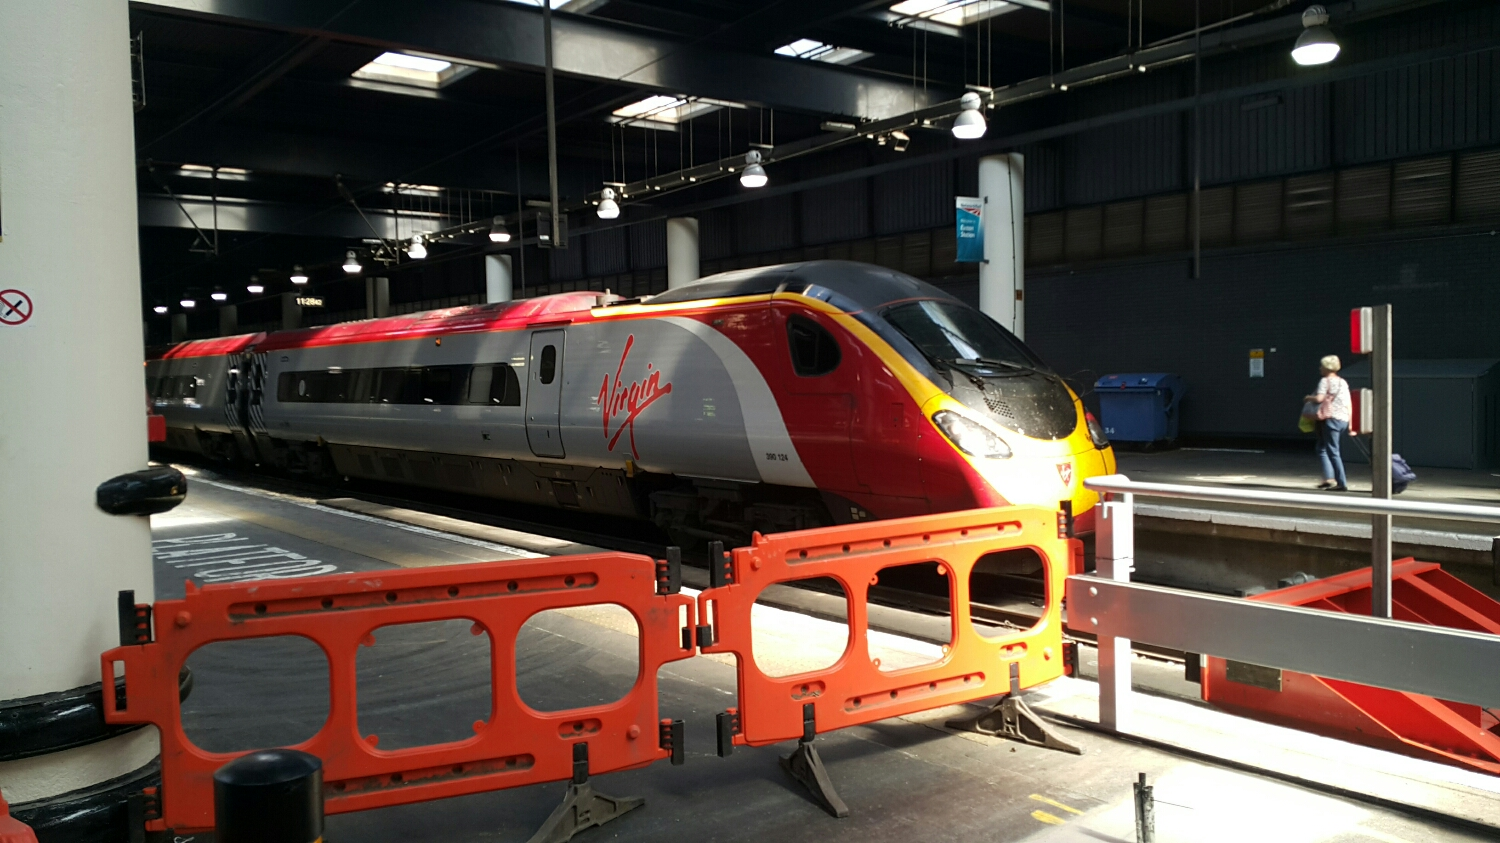 My Virgin train getting ready to wizz me to the North.